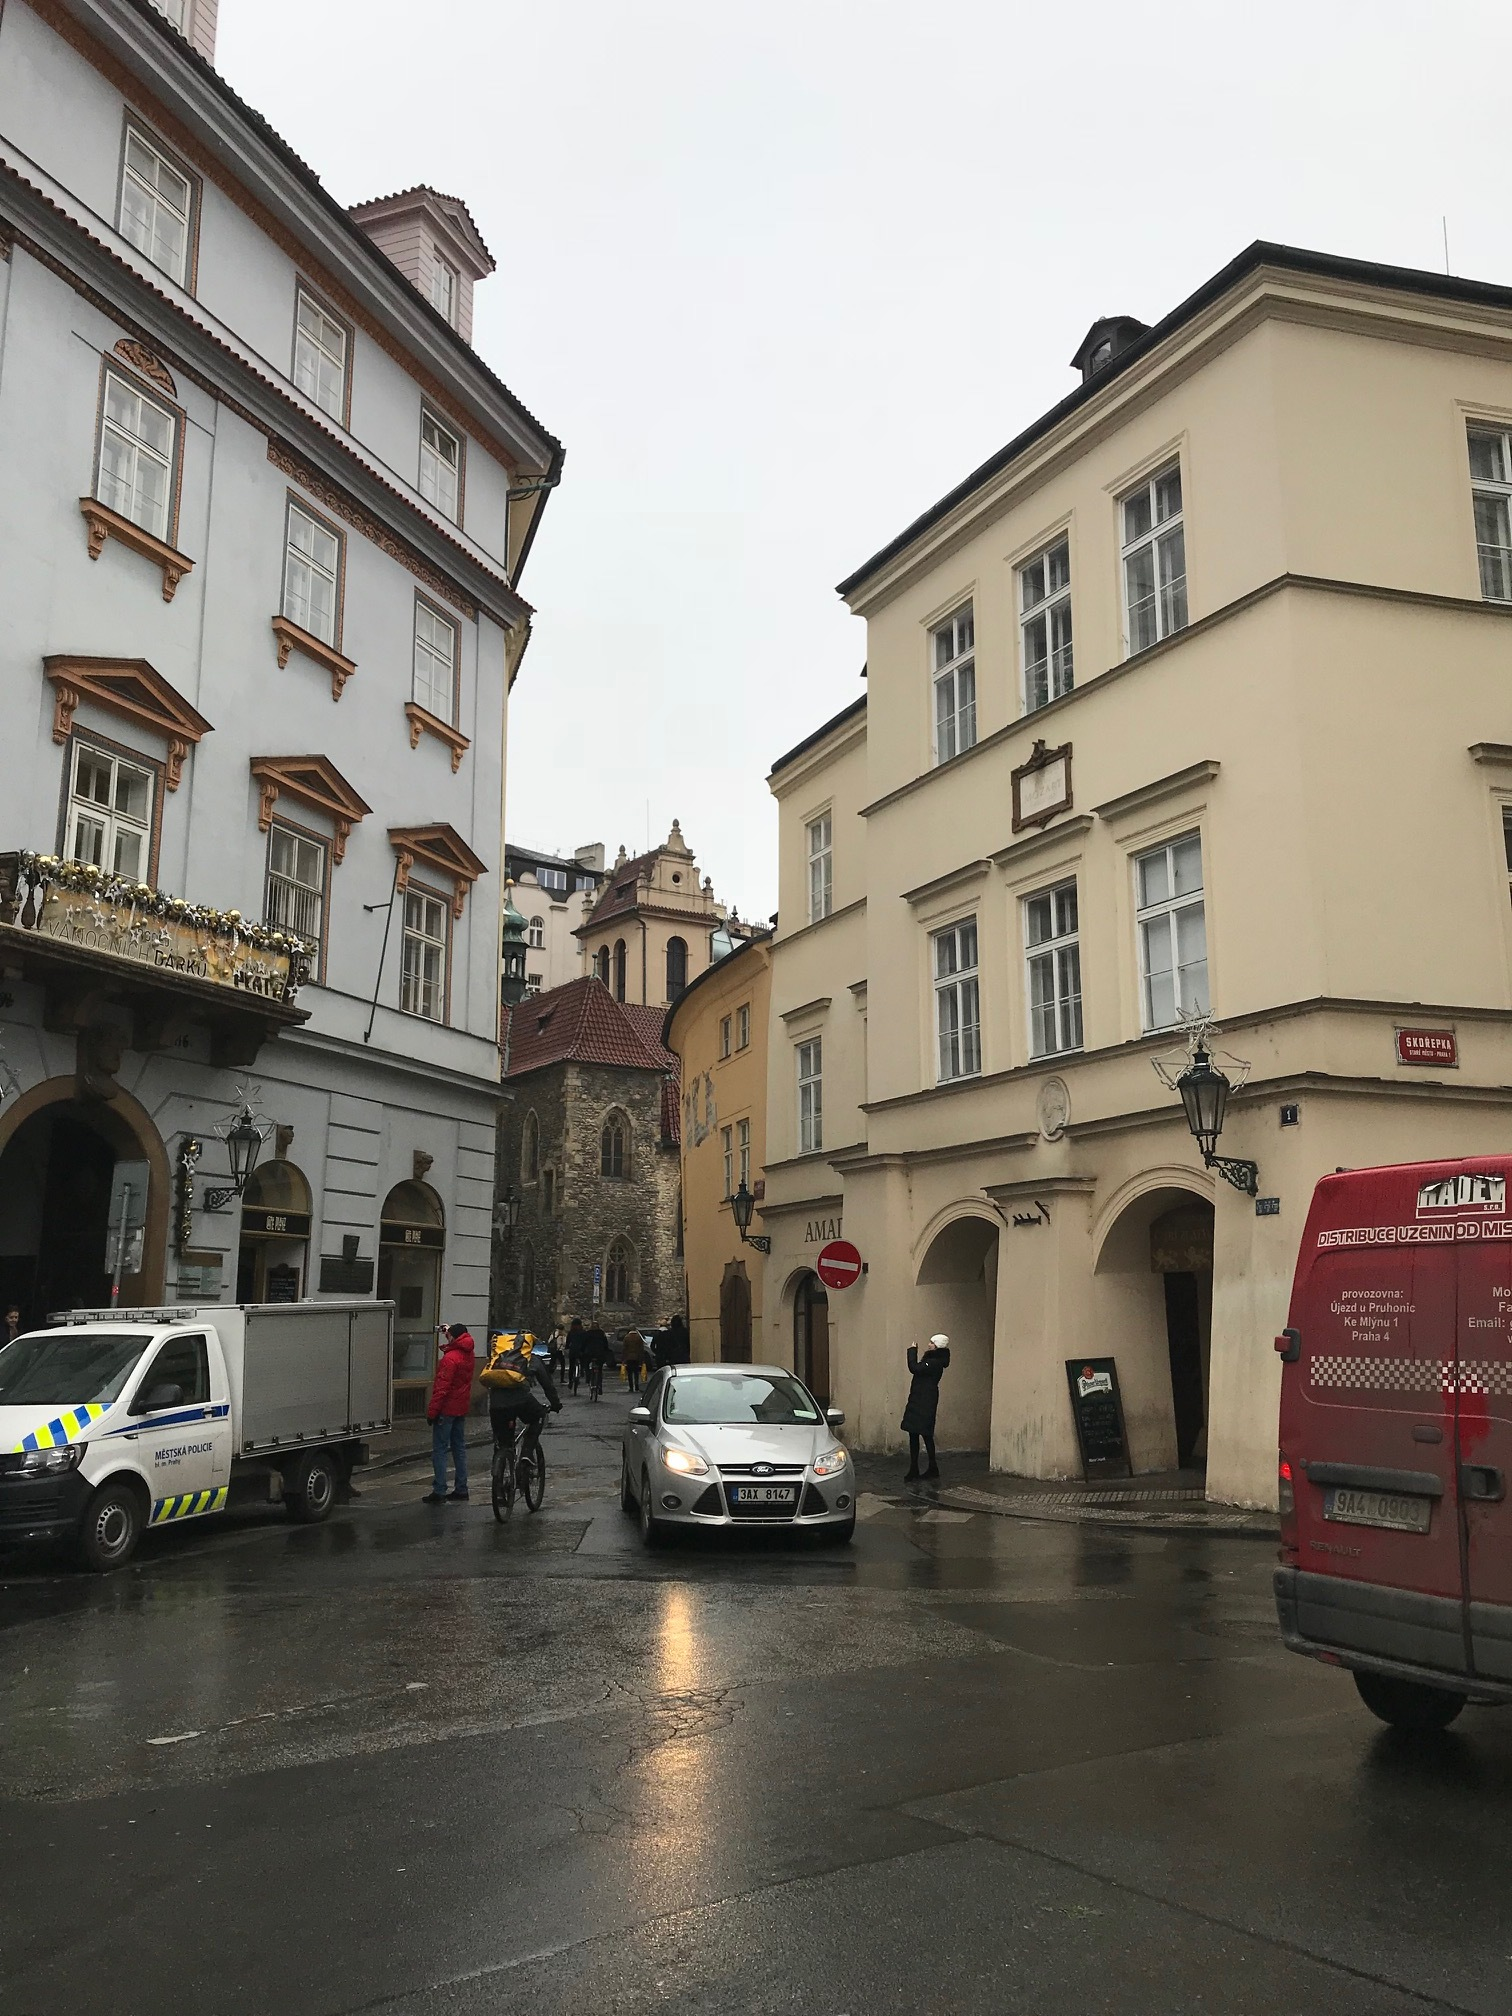 Mozart lived in the house on the right